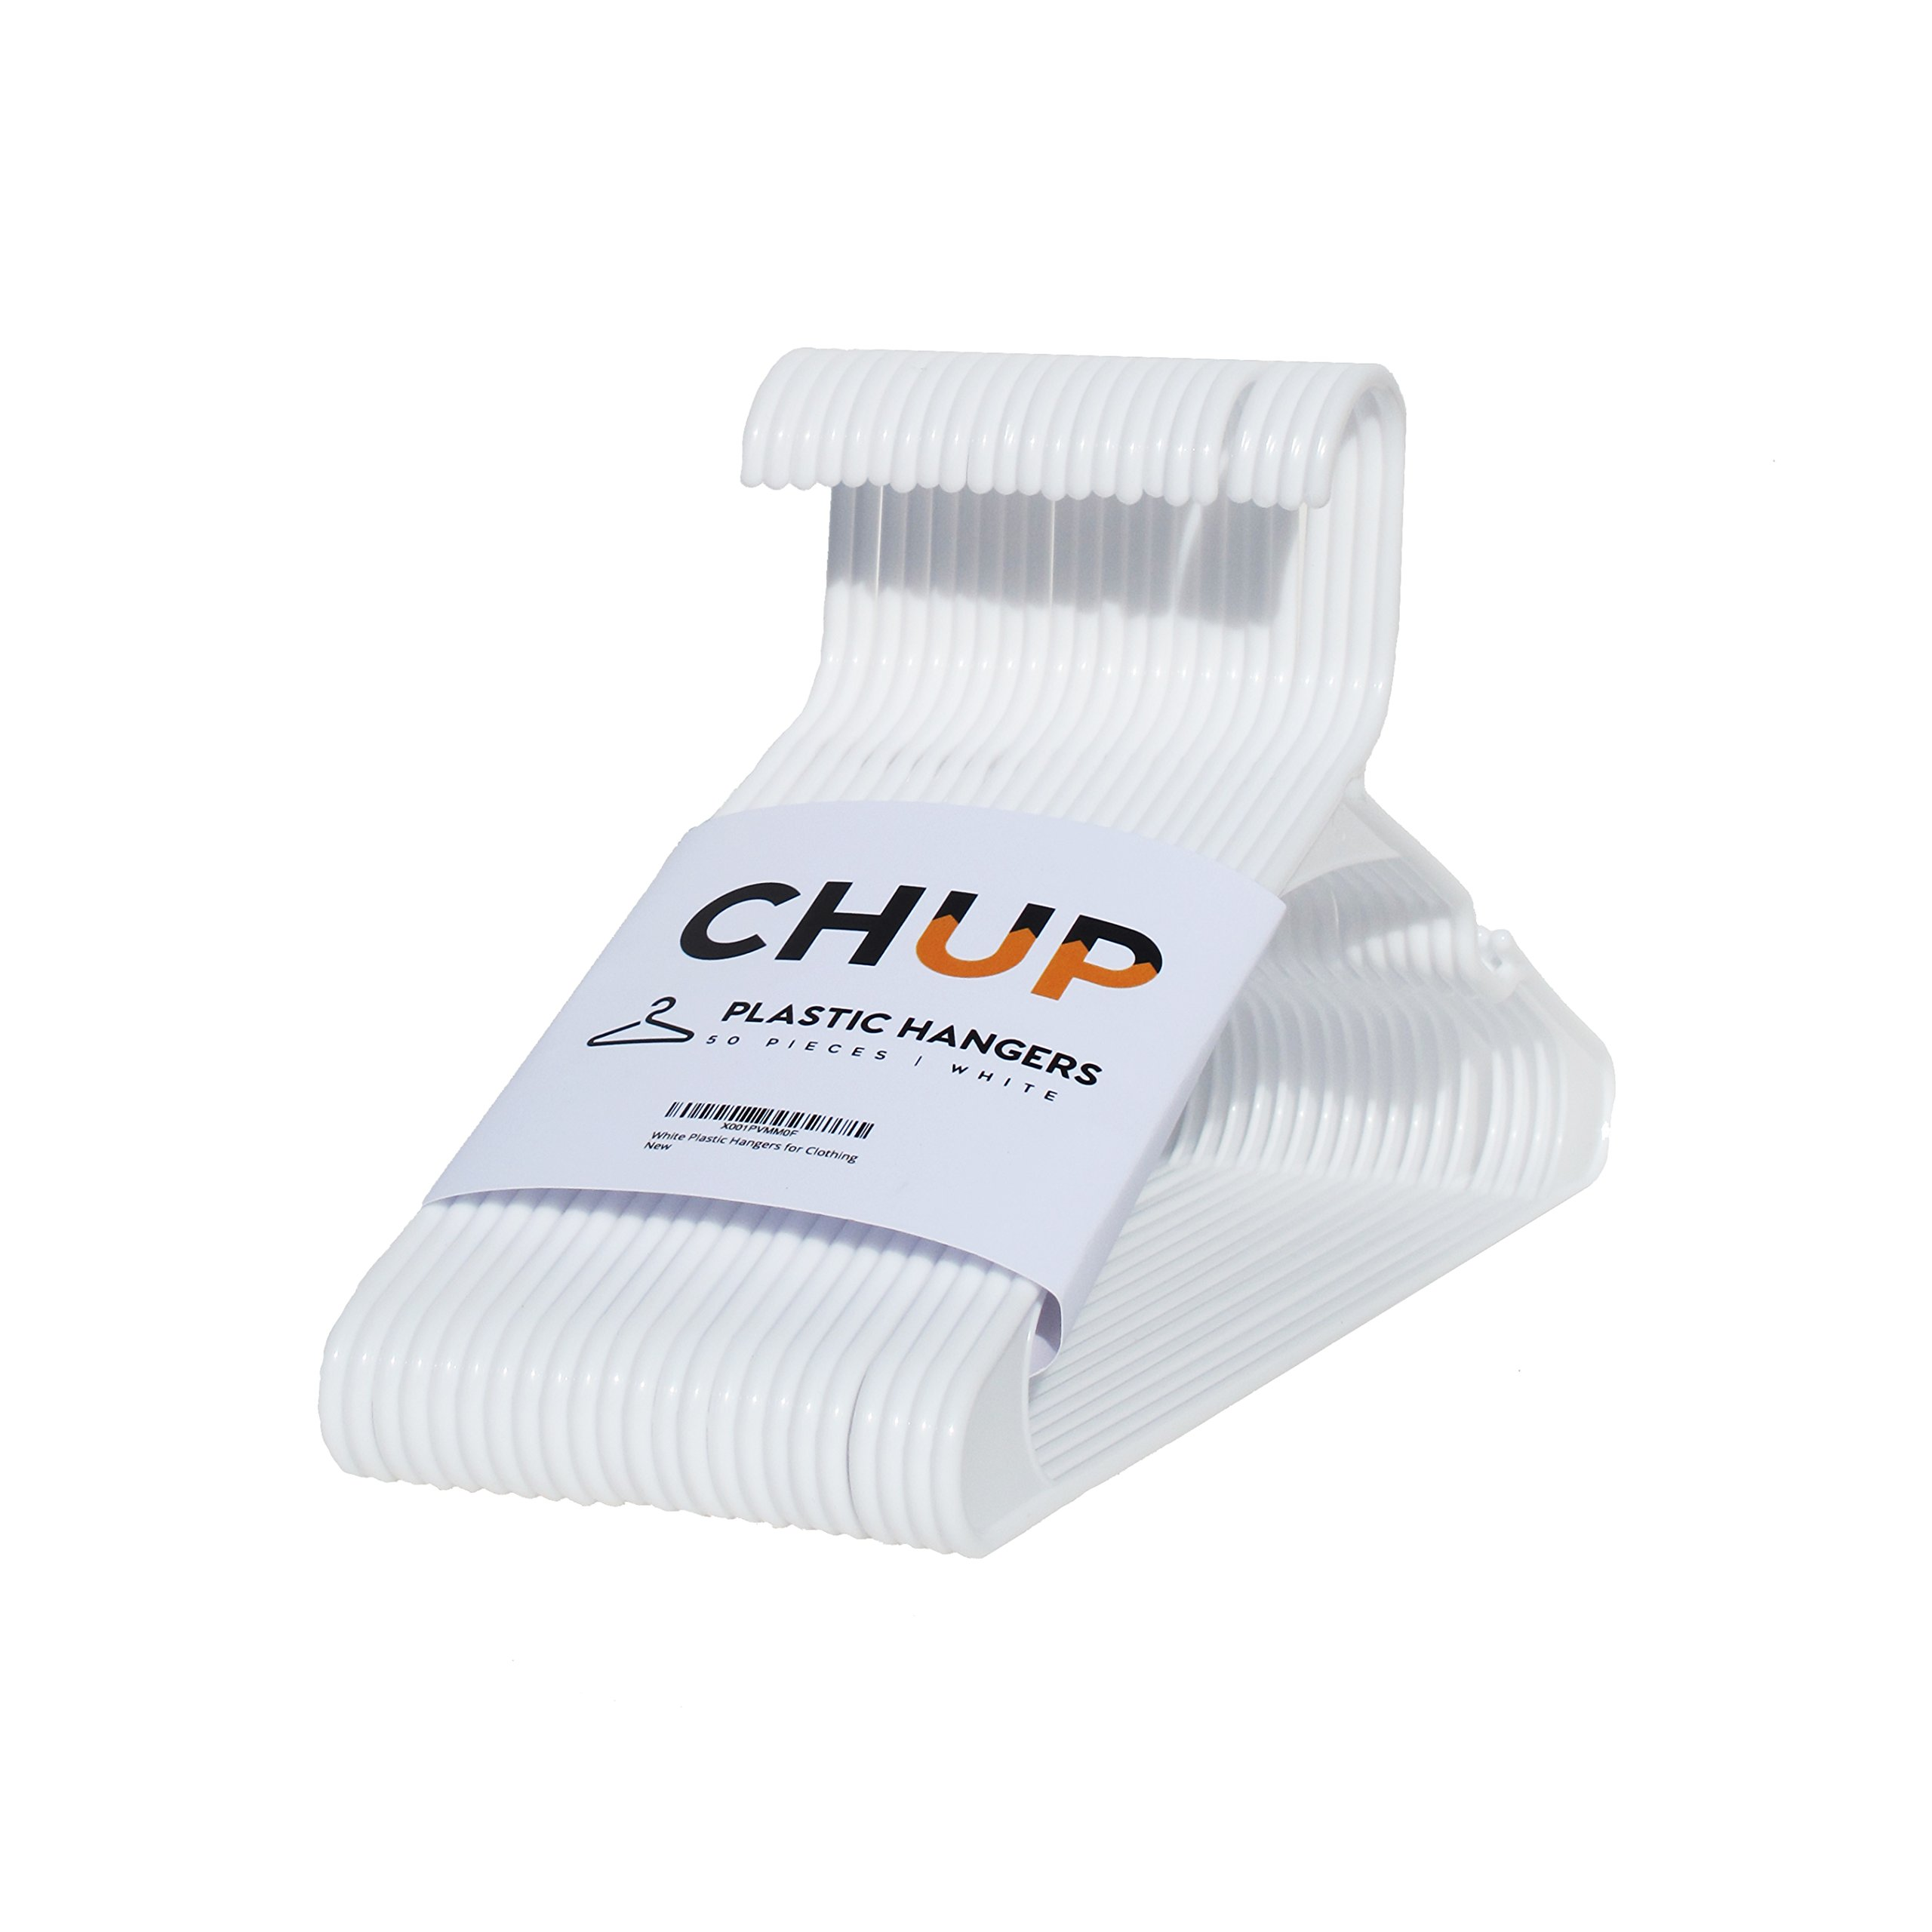 CHUP White Plastic Hangers Standard w/Hooks - Durable, Strong and Flexible Quality for Long Lasting Value - 50 Pack by CHUP